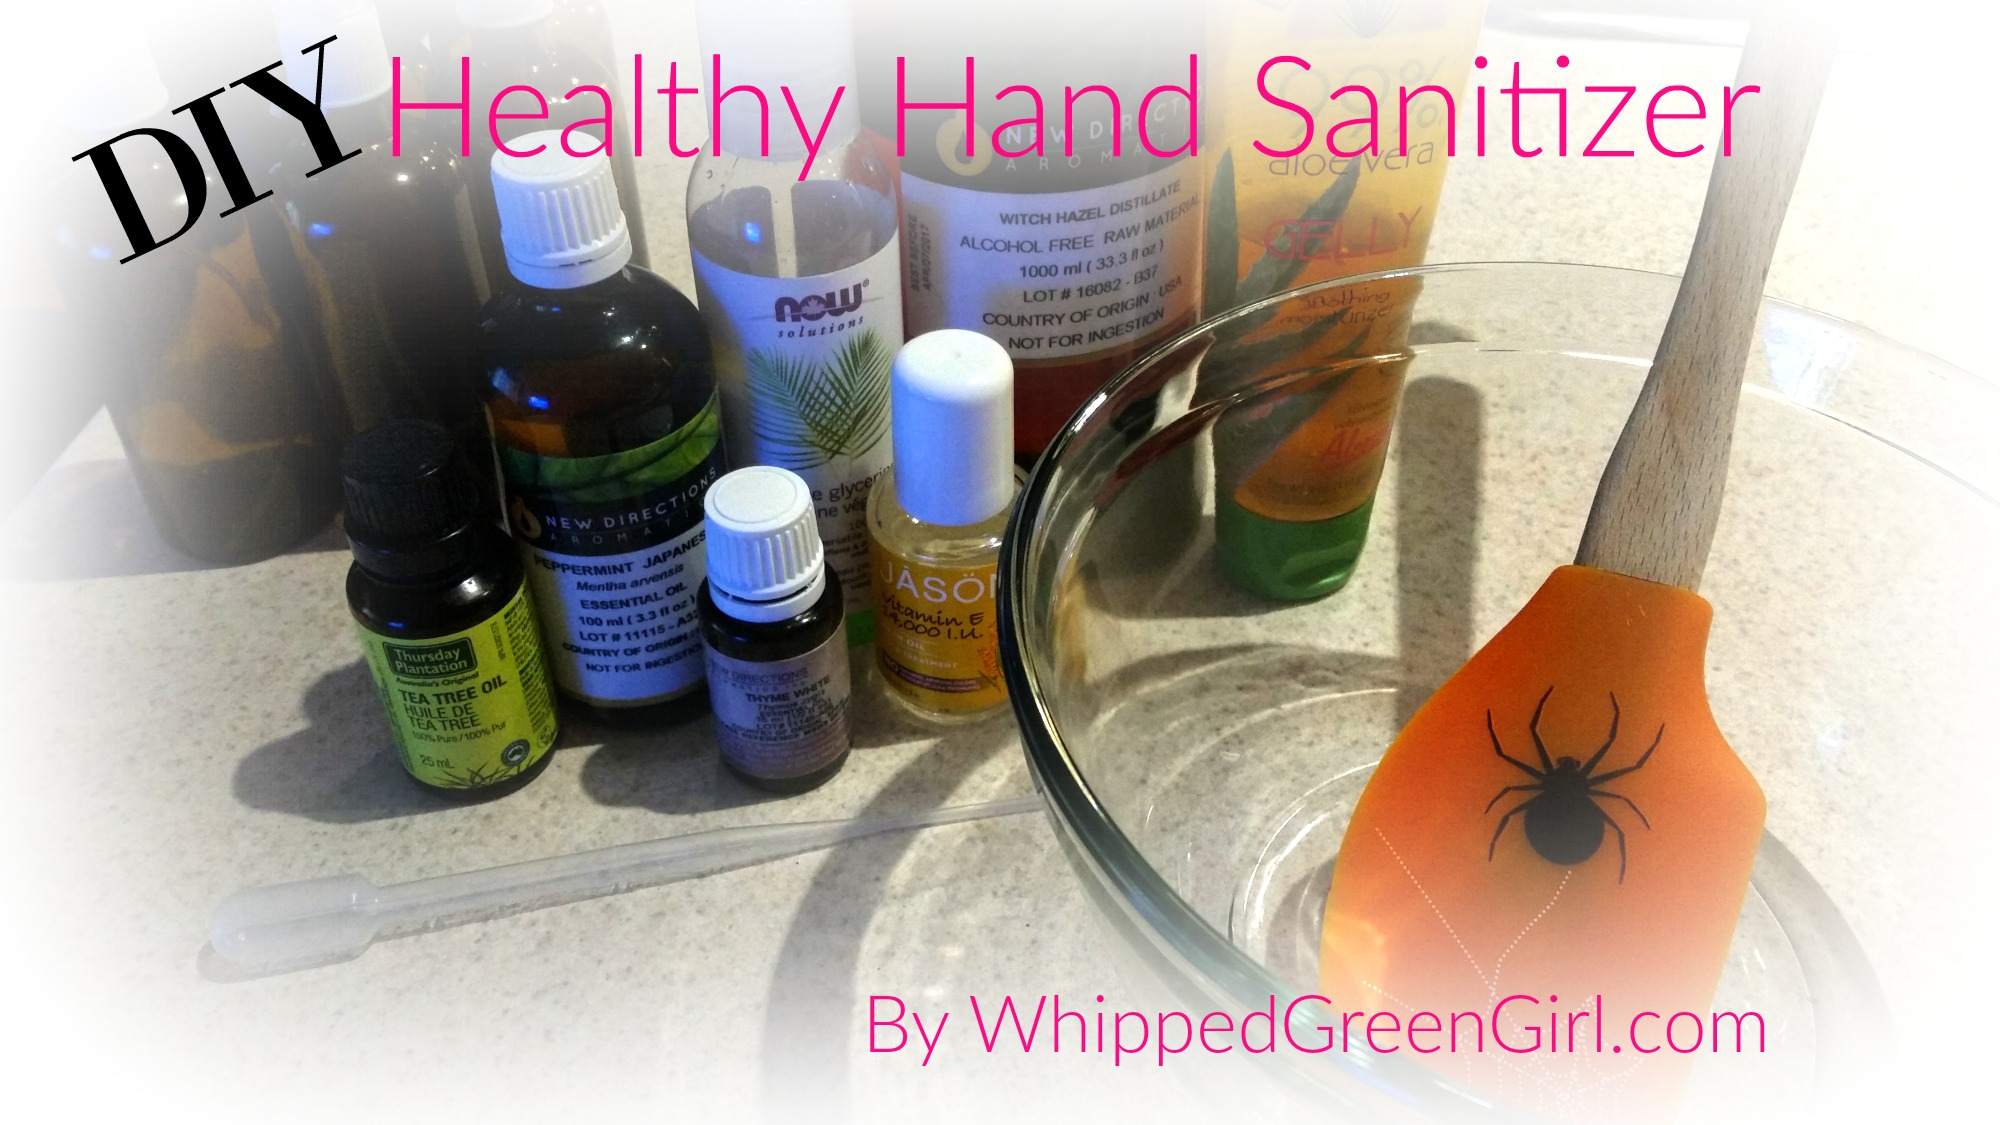 DIY Healthy Hand Sanitizer - Aloe Vera Based – Organic – Non-Toxic (By WhippedGreenGirl.com)